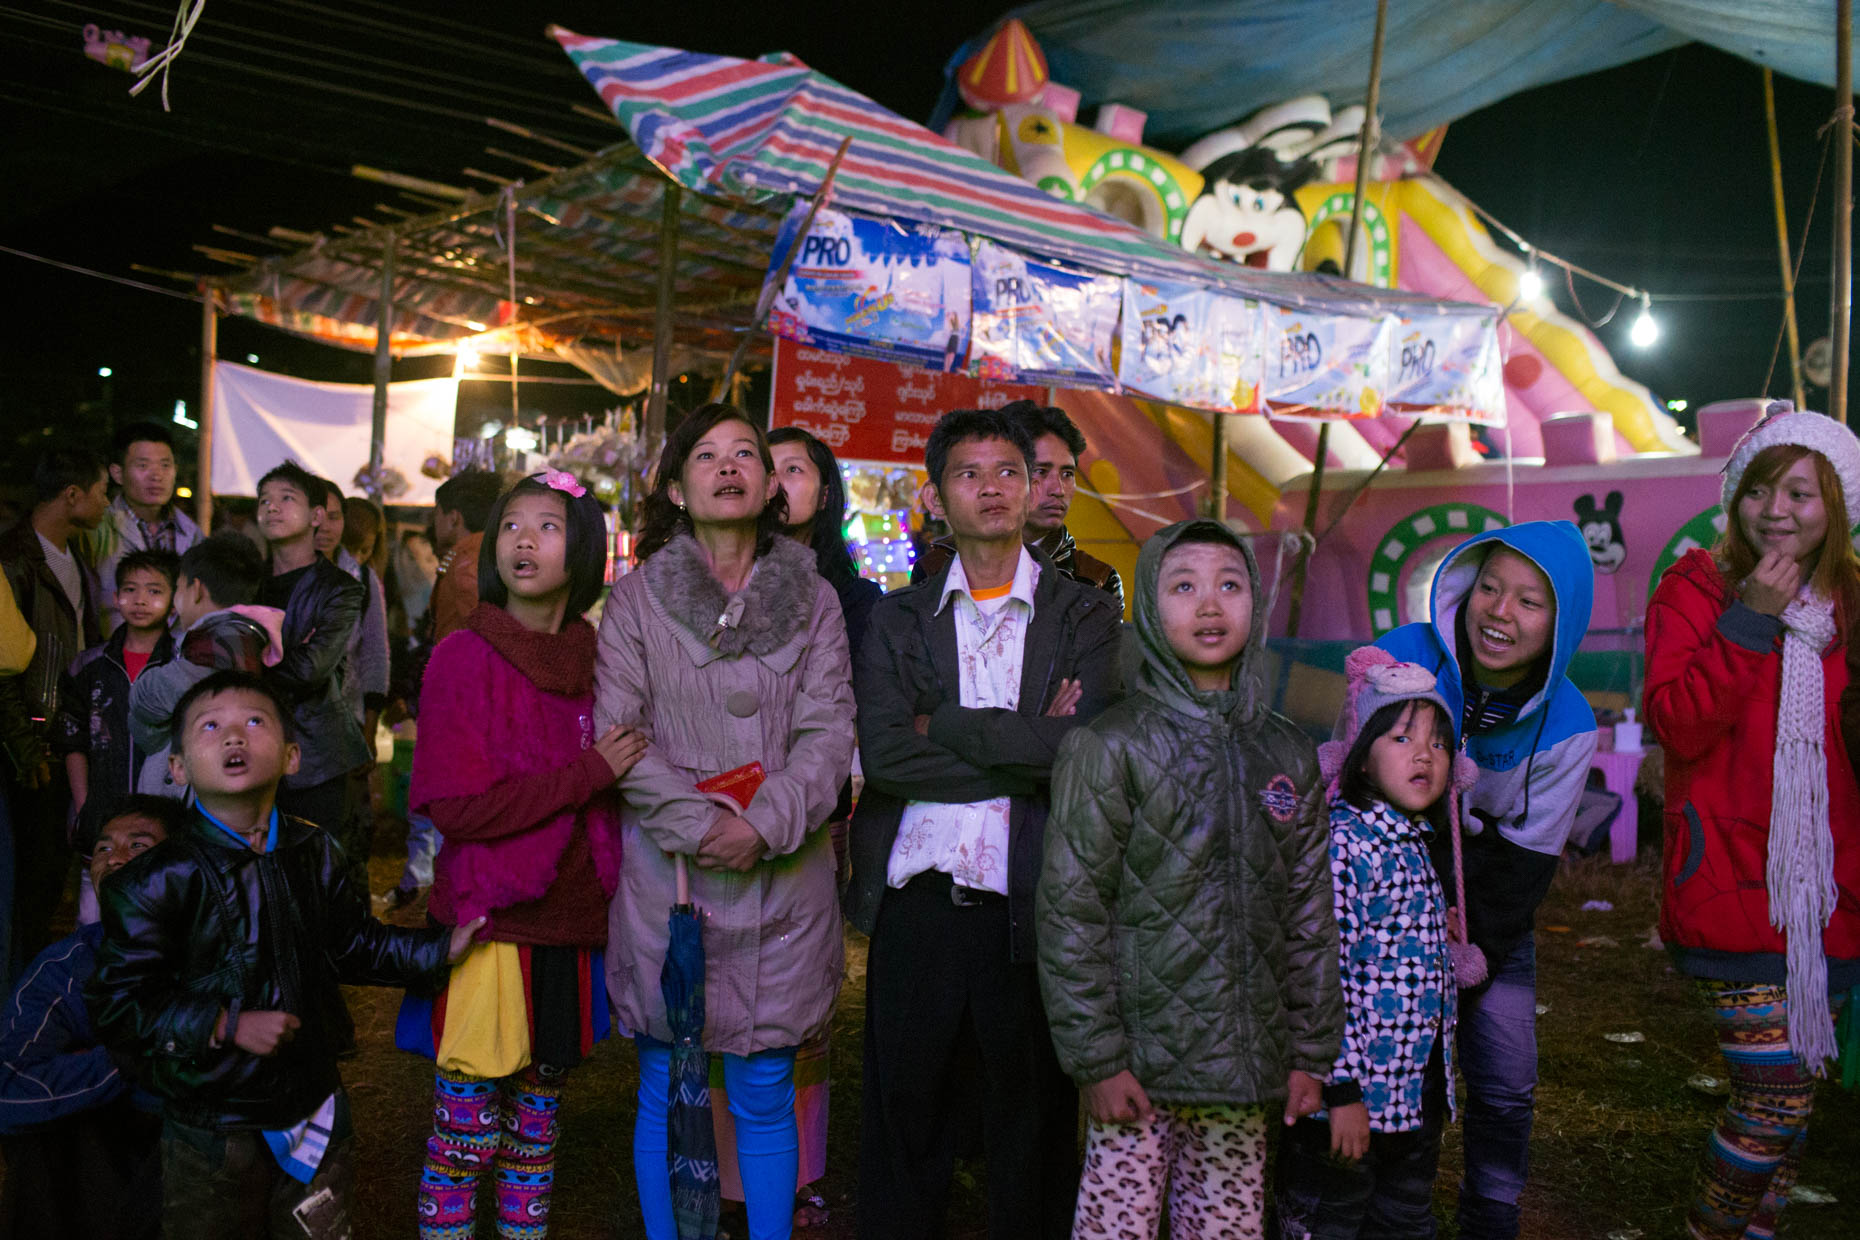 MYANMAR_LIGHT FESTIVAL_20131116_11655